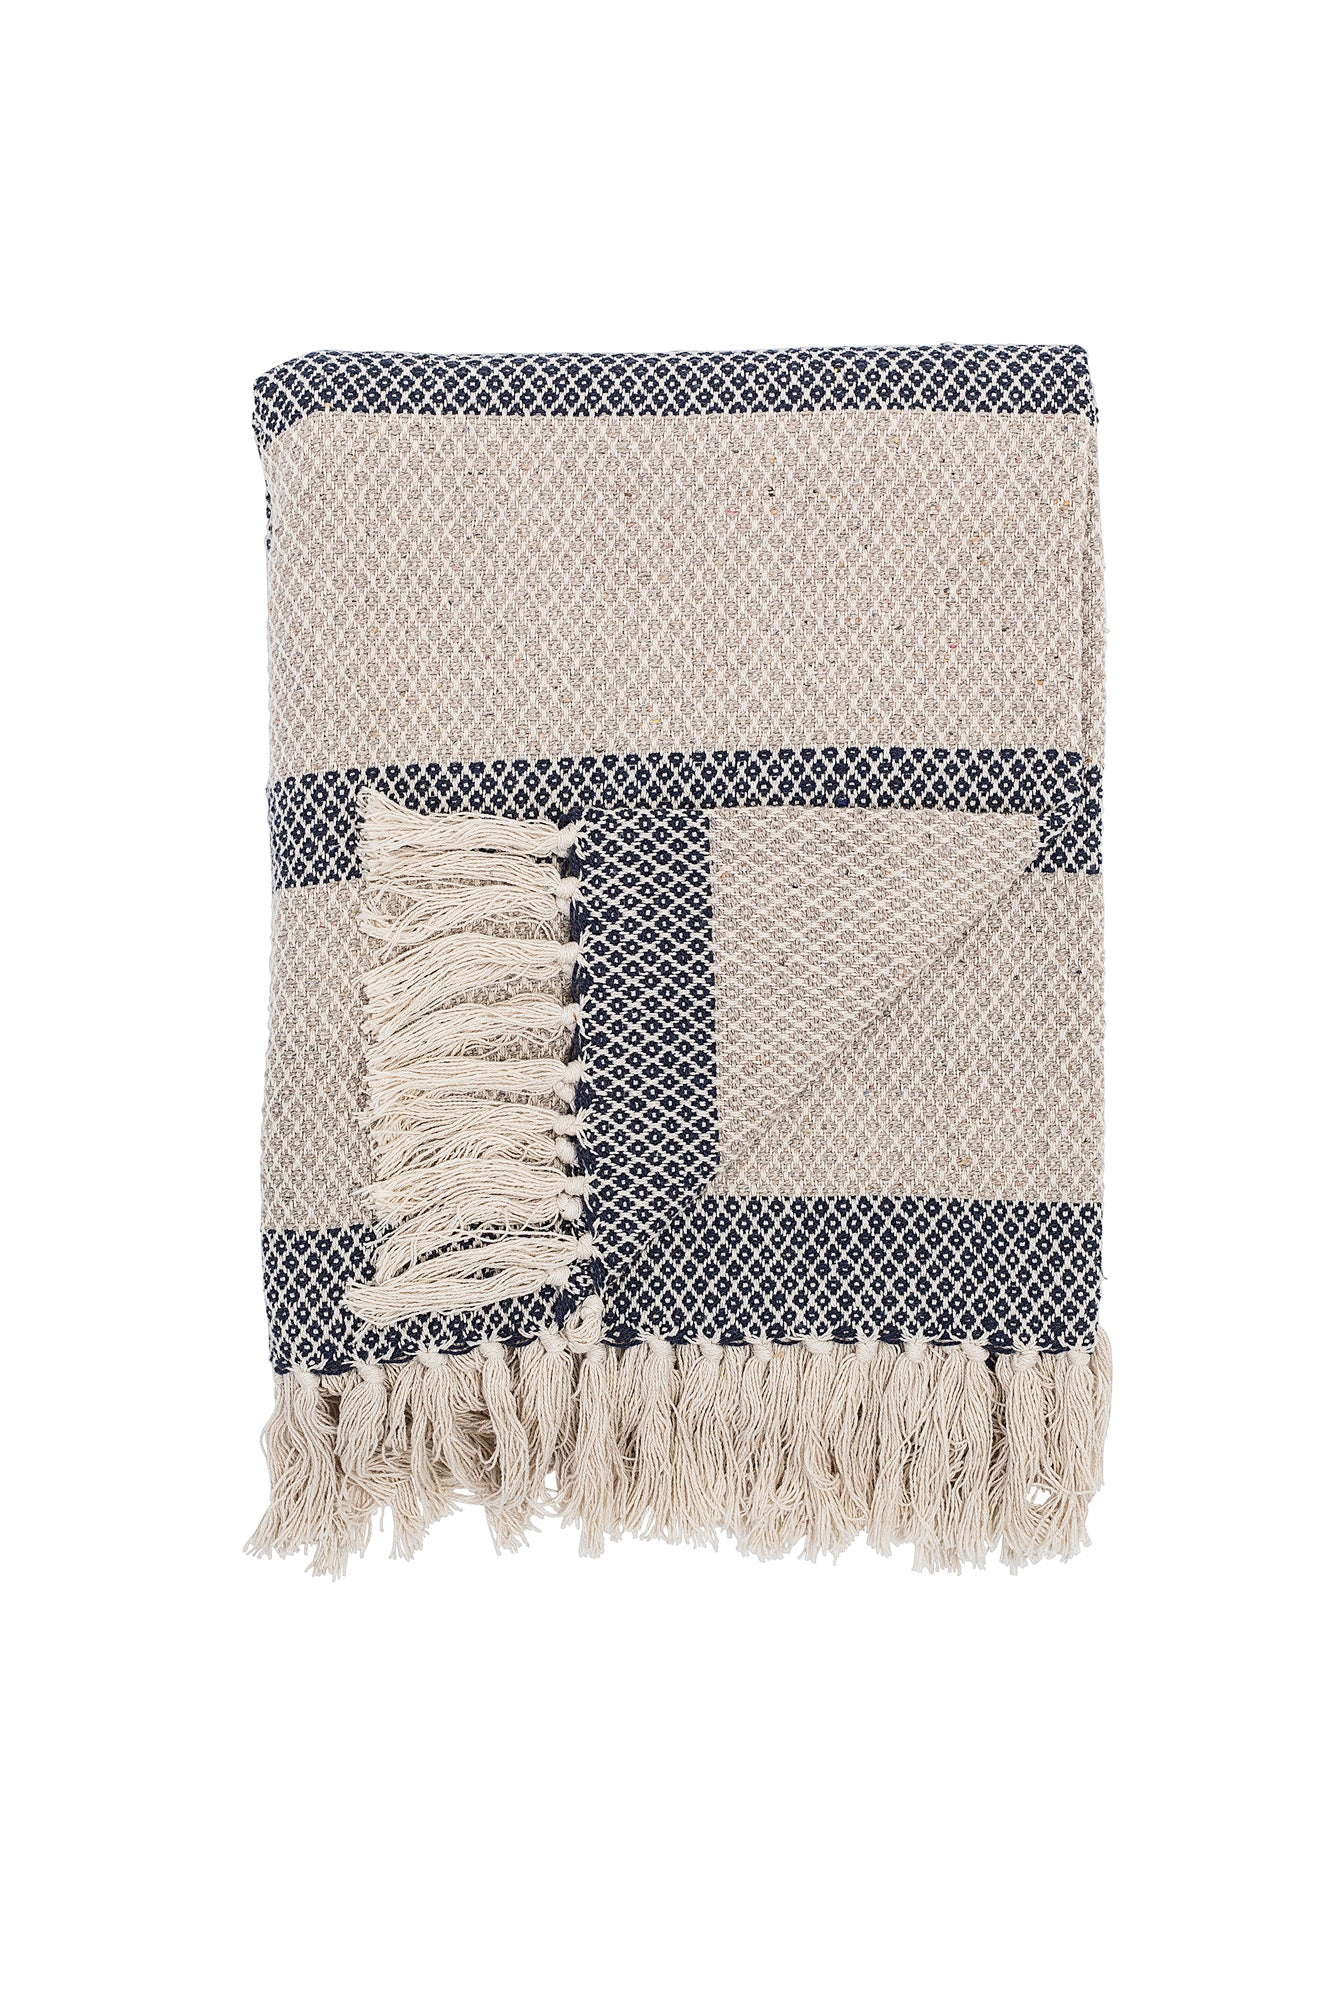 Cream Blue Throw, Textile, Bloomingville - 3LittlePicks